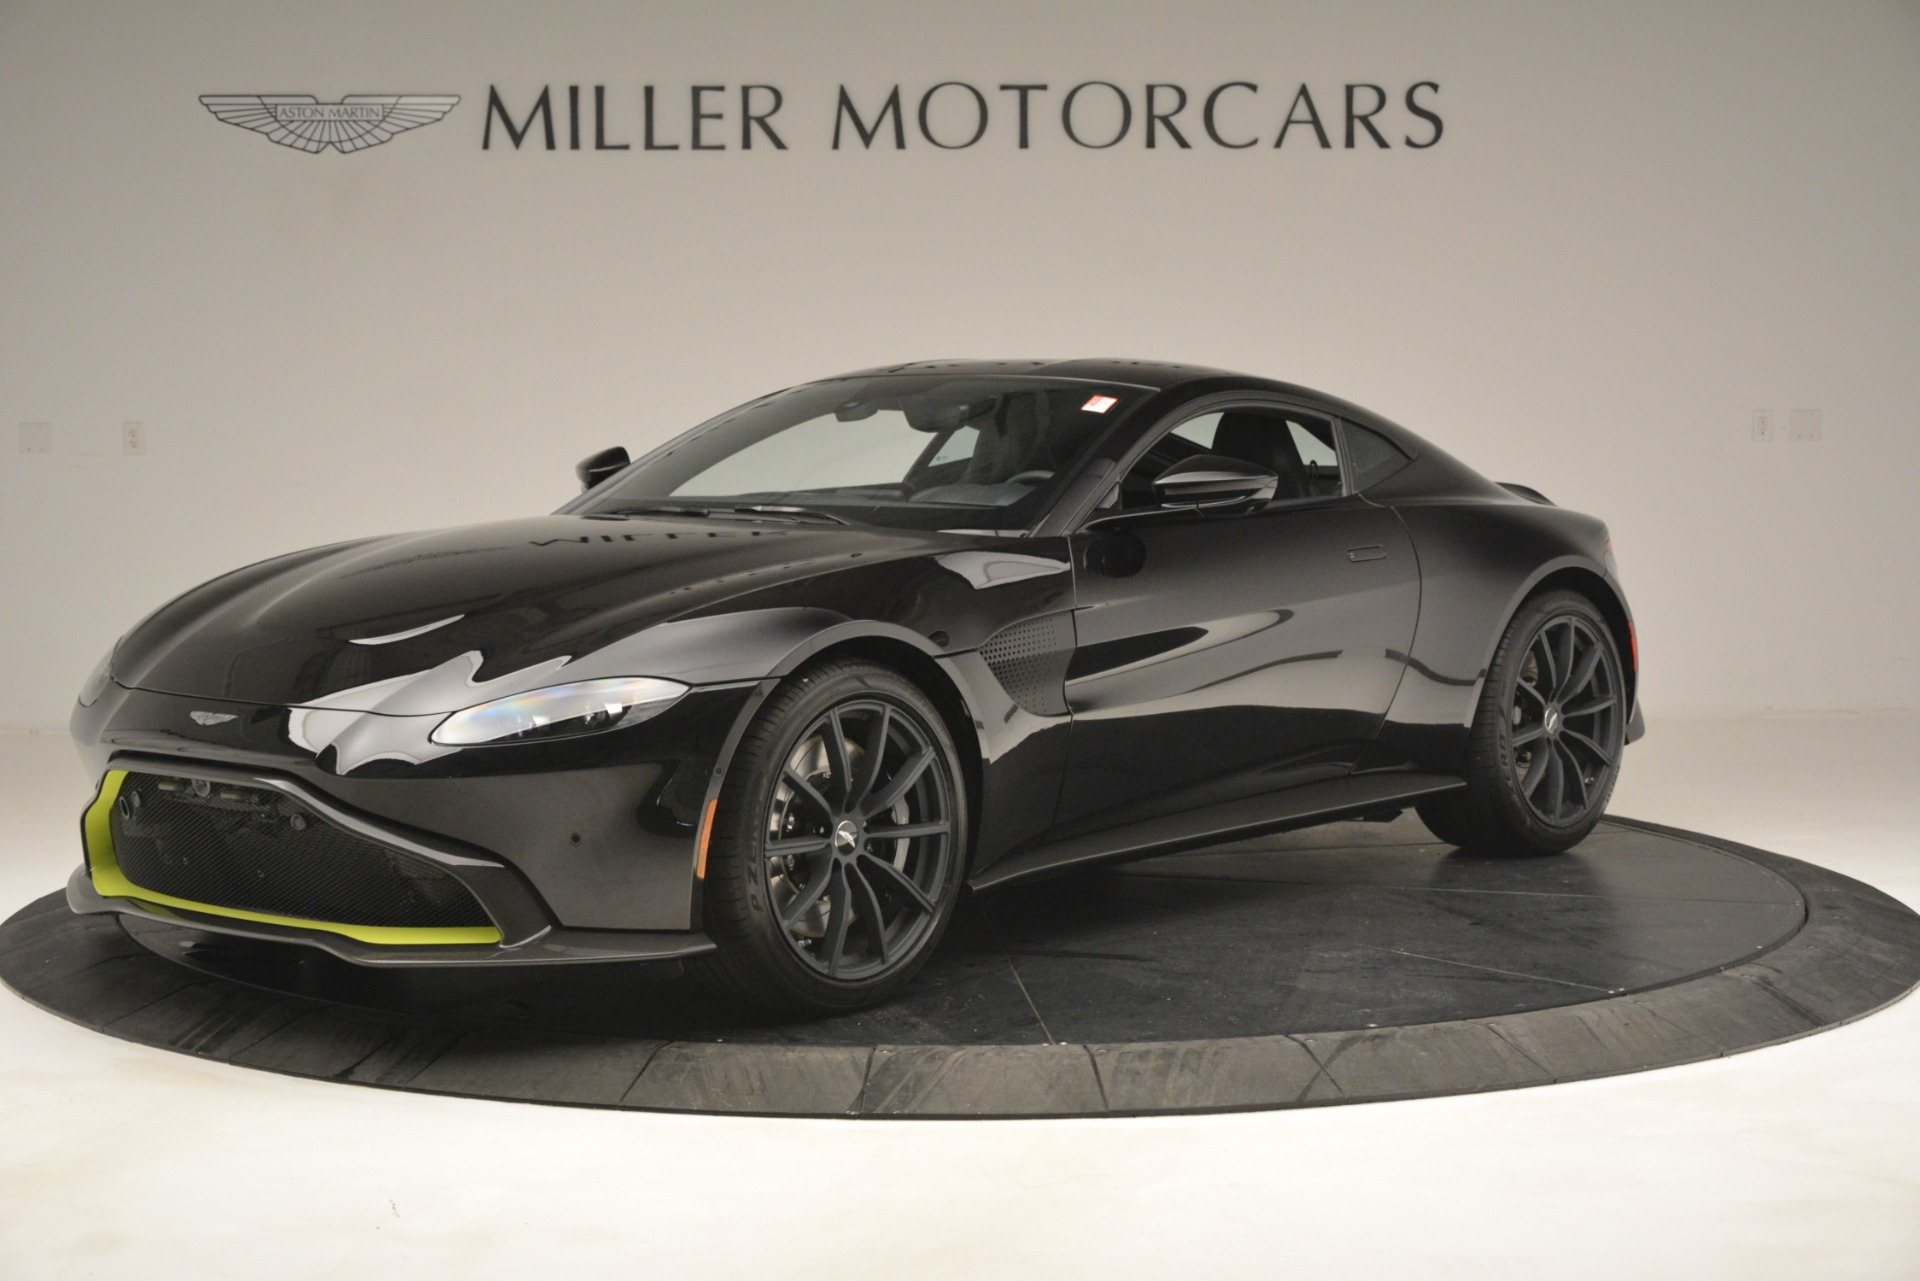 New 2019 Aston Martin Vantage Coupe for sale Sold at Maserati of Westport in Westport CT 06880 1